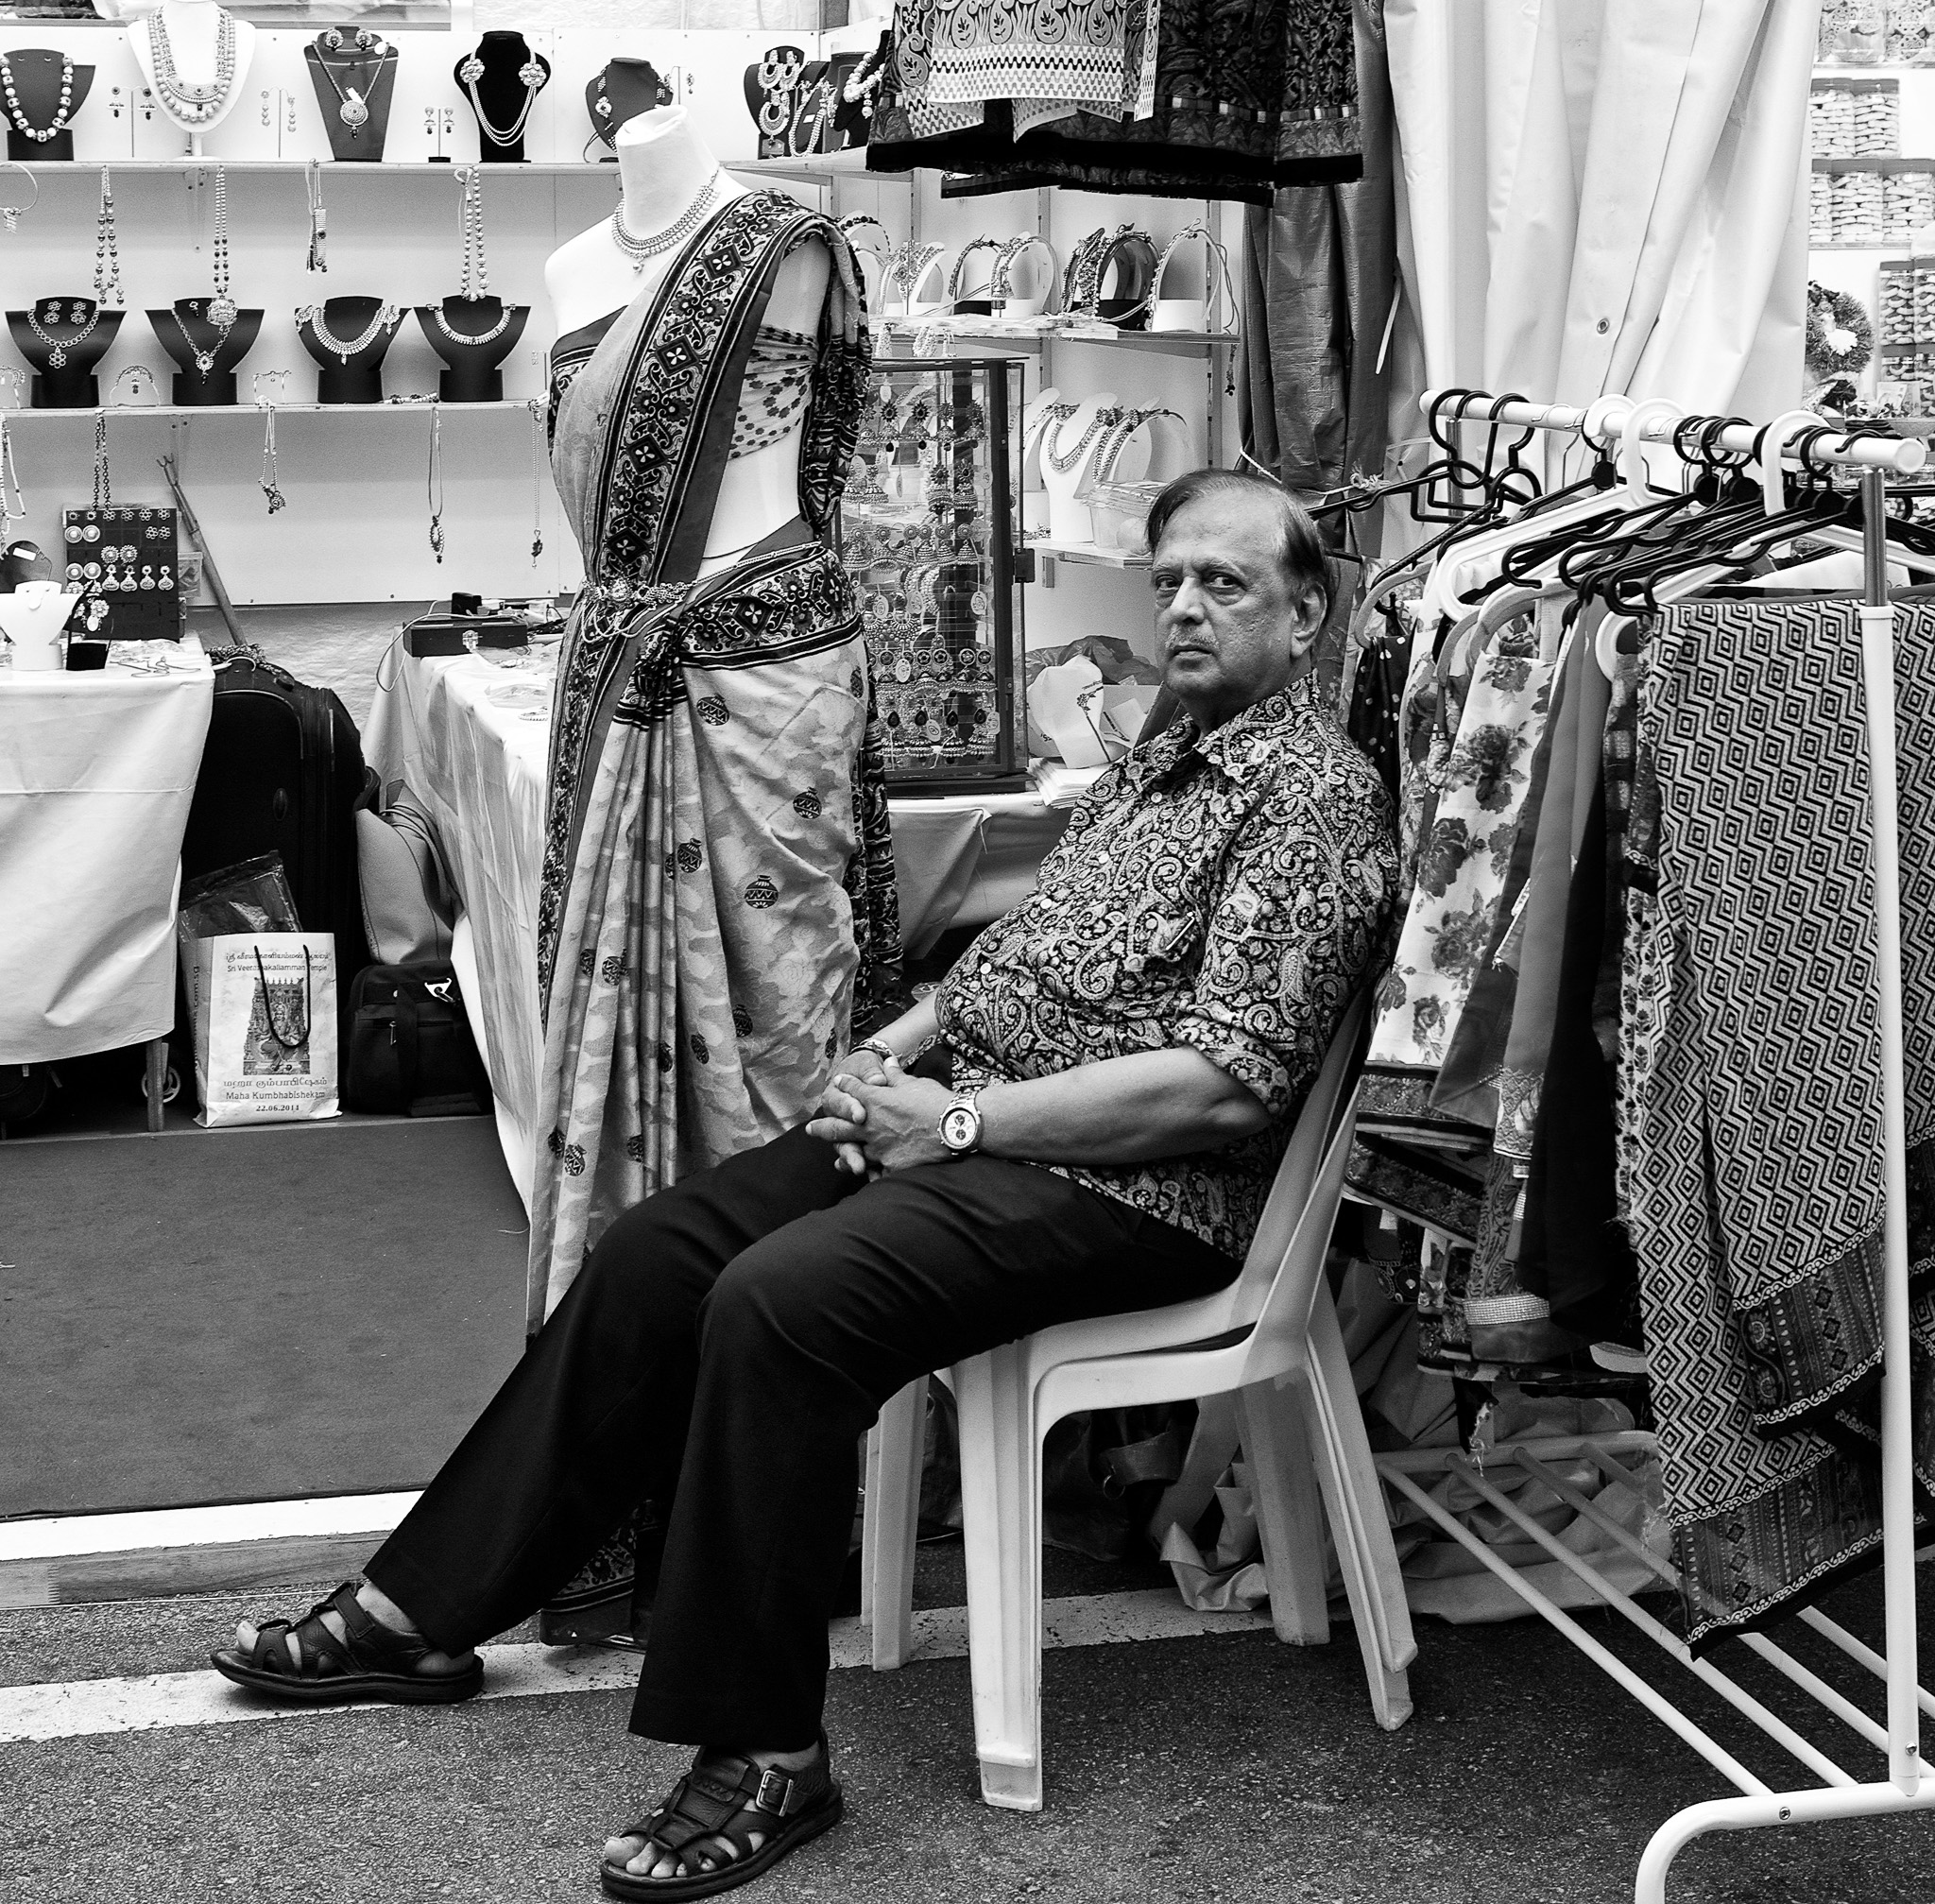 A shopkeeper, and his mannequin. Hastings Road, Little India, Singapore